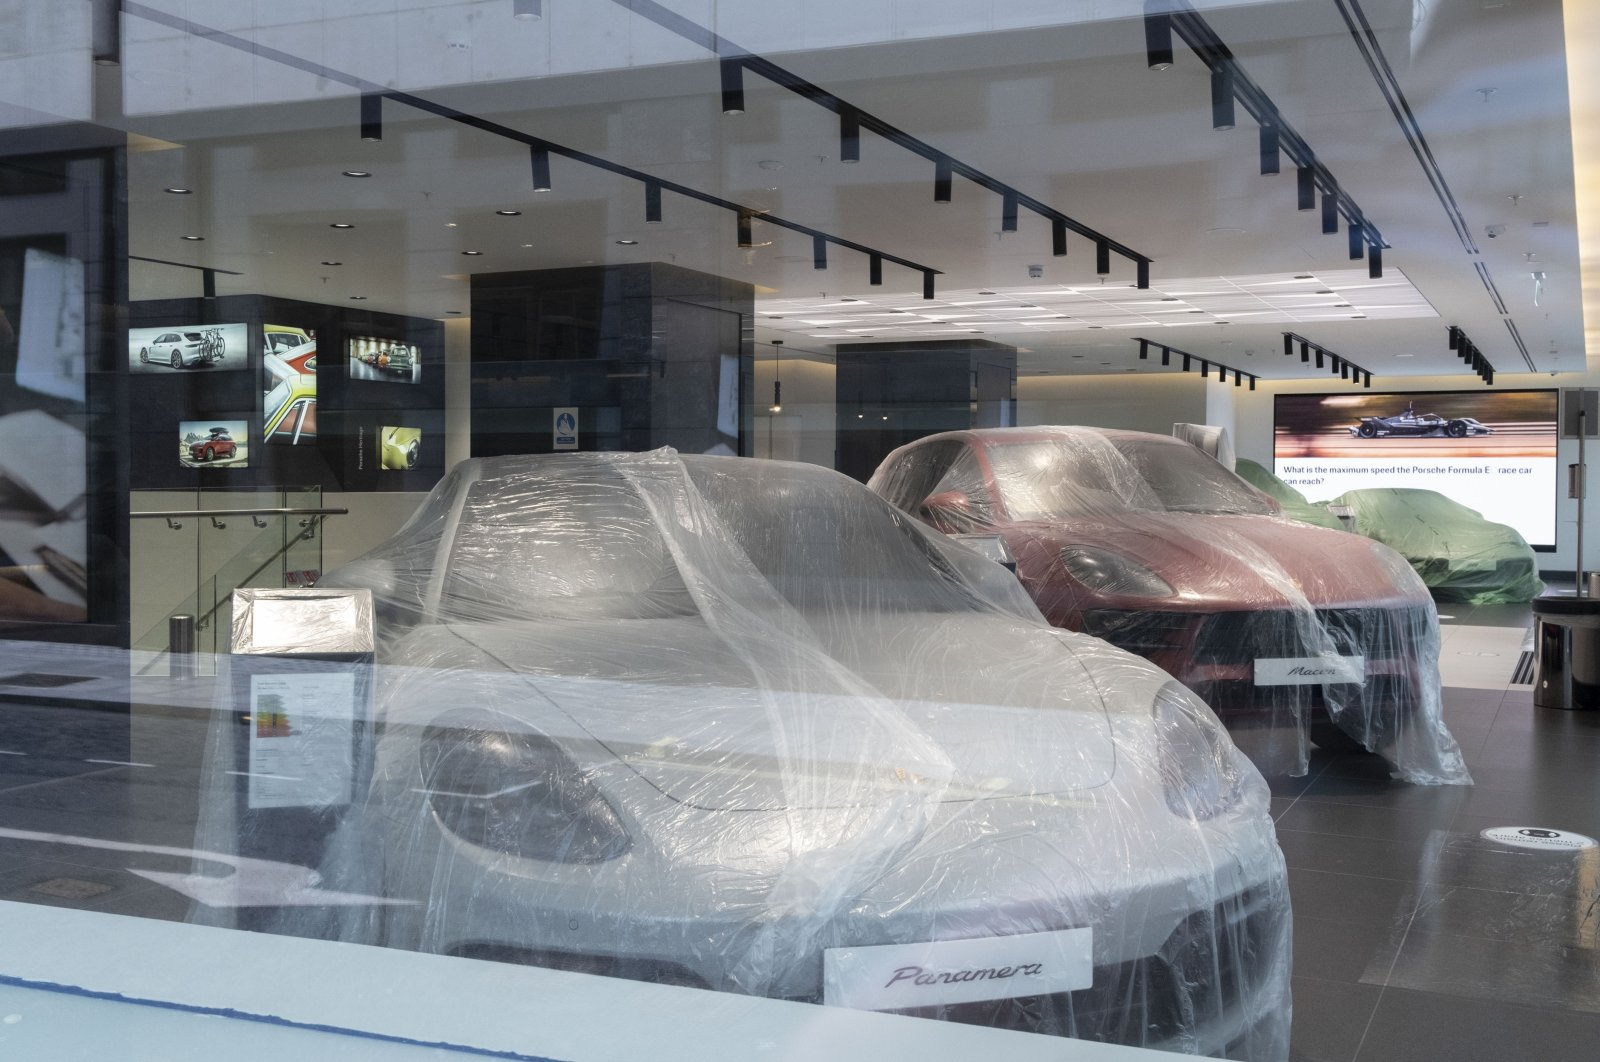 Protected from dust as non-essential businesses closed during the coronavirus pandemic, luxury Porsche cars are covered up in the company's Piccadilly showroom, London, England, March 4, 2021. (Getty Images)